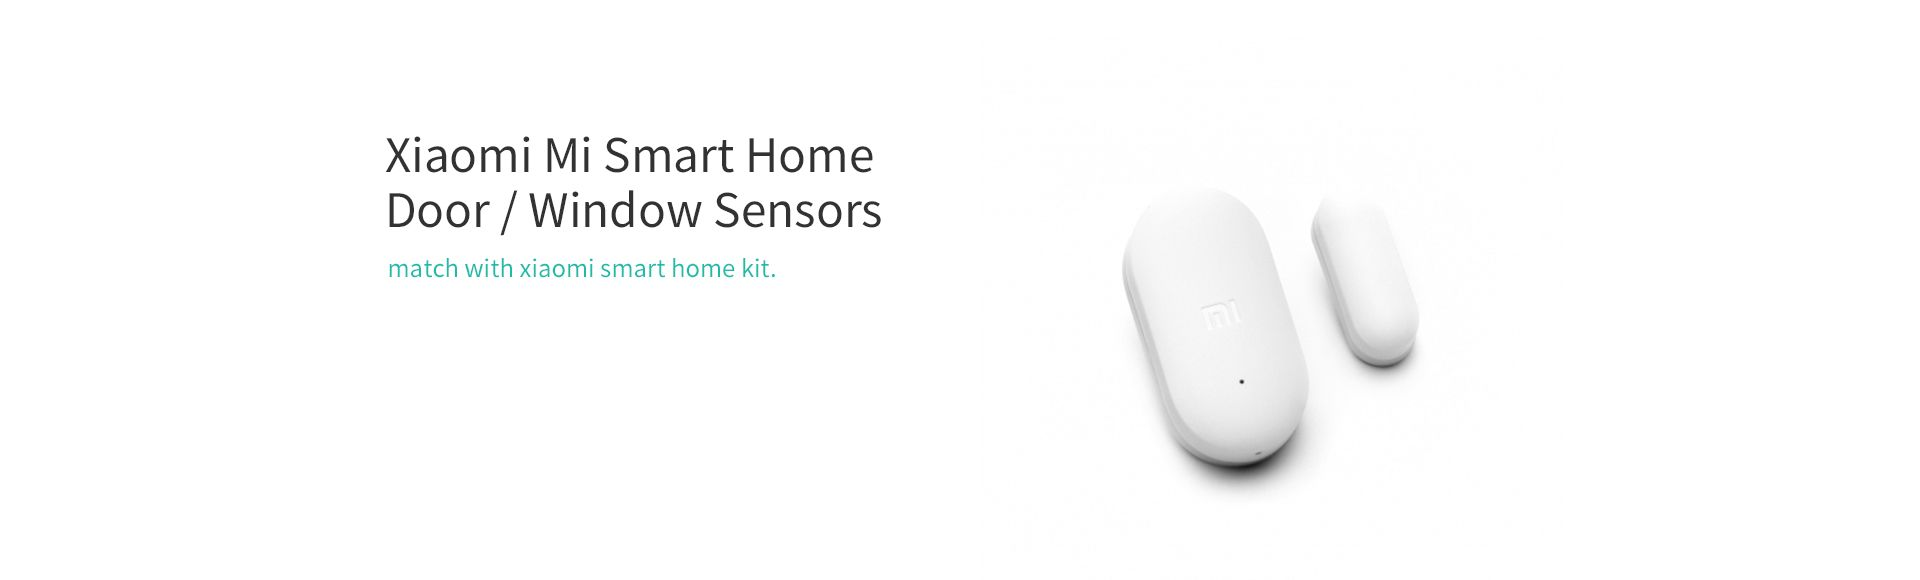 Xiaomi Mi Smart Home Door / Window Sensors - Smart Home Suit Kit Accessory